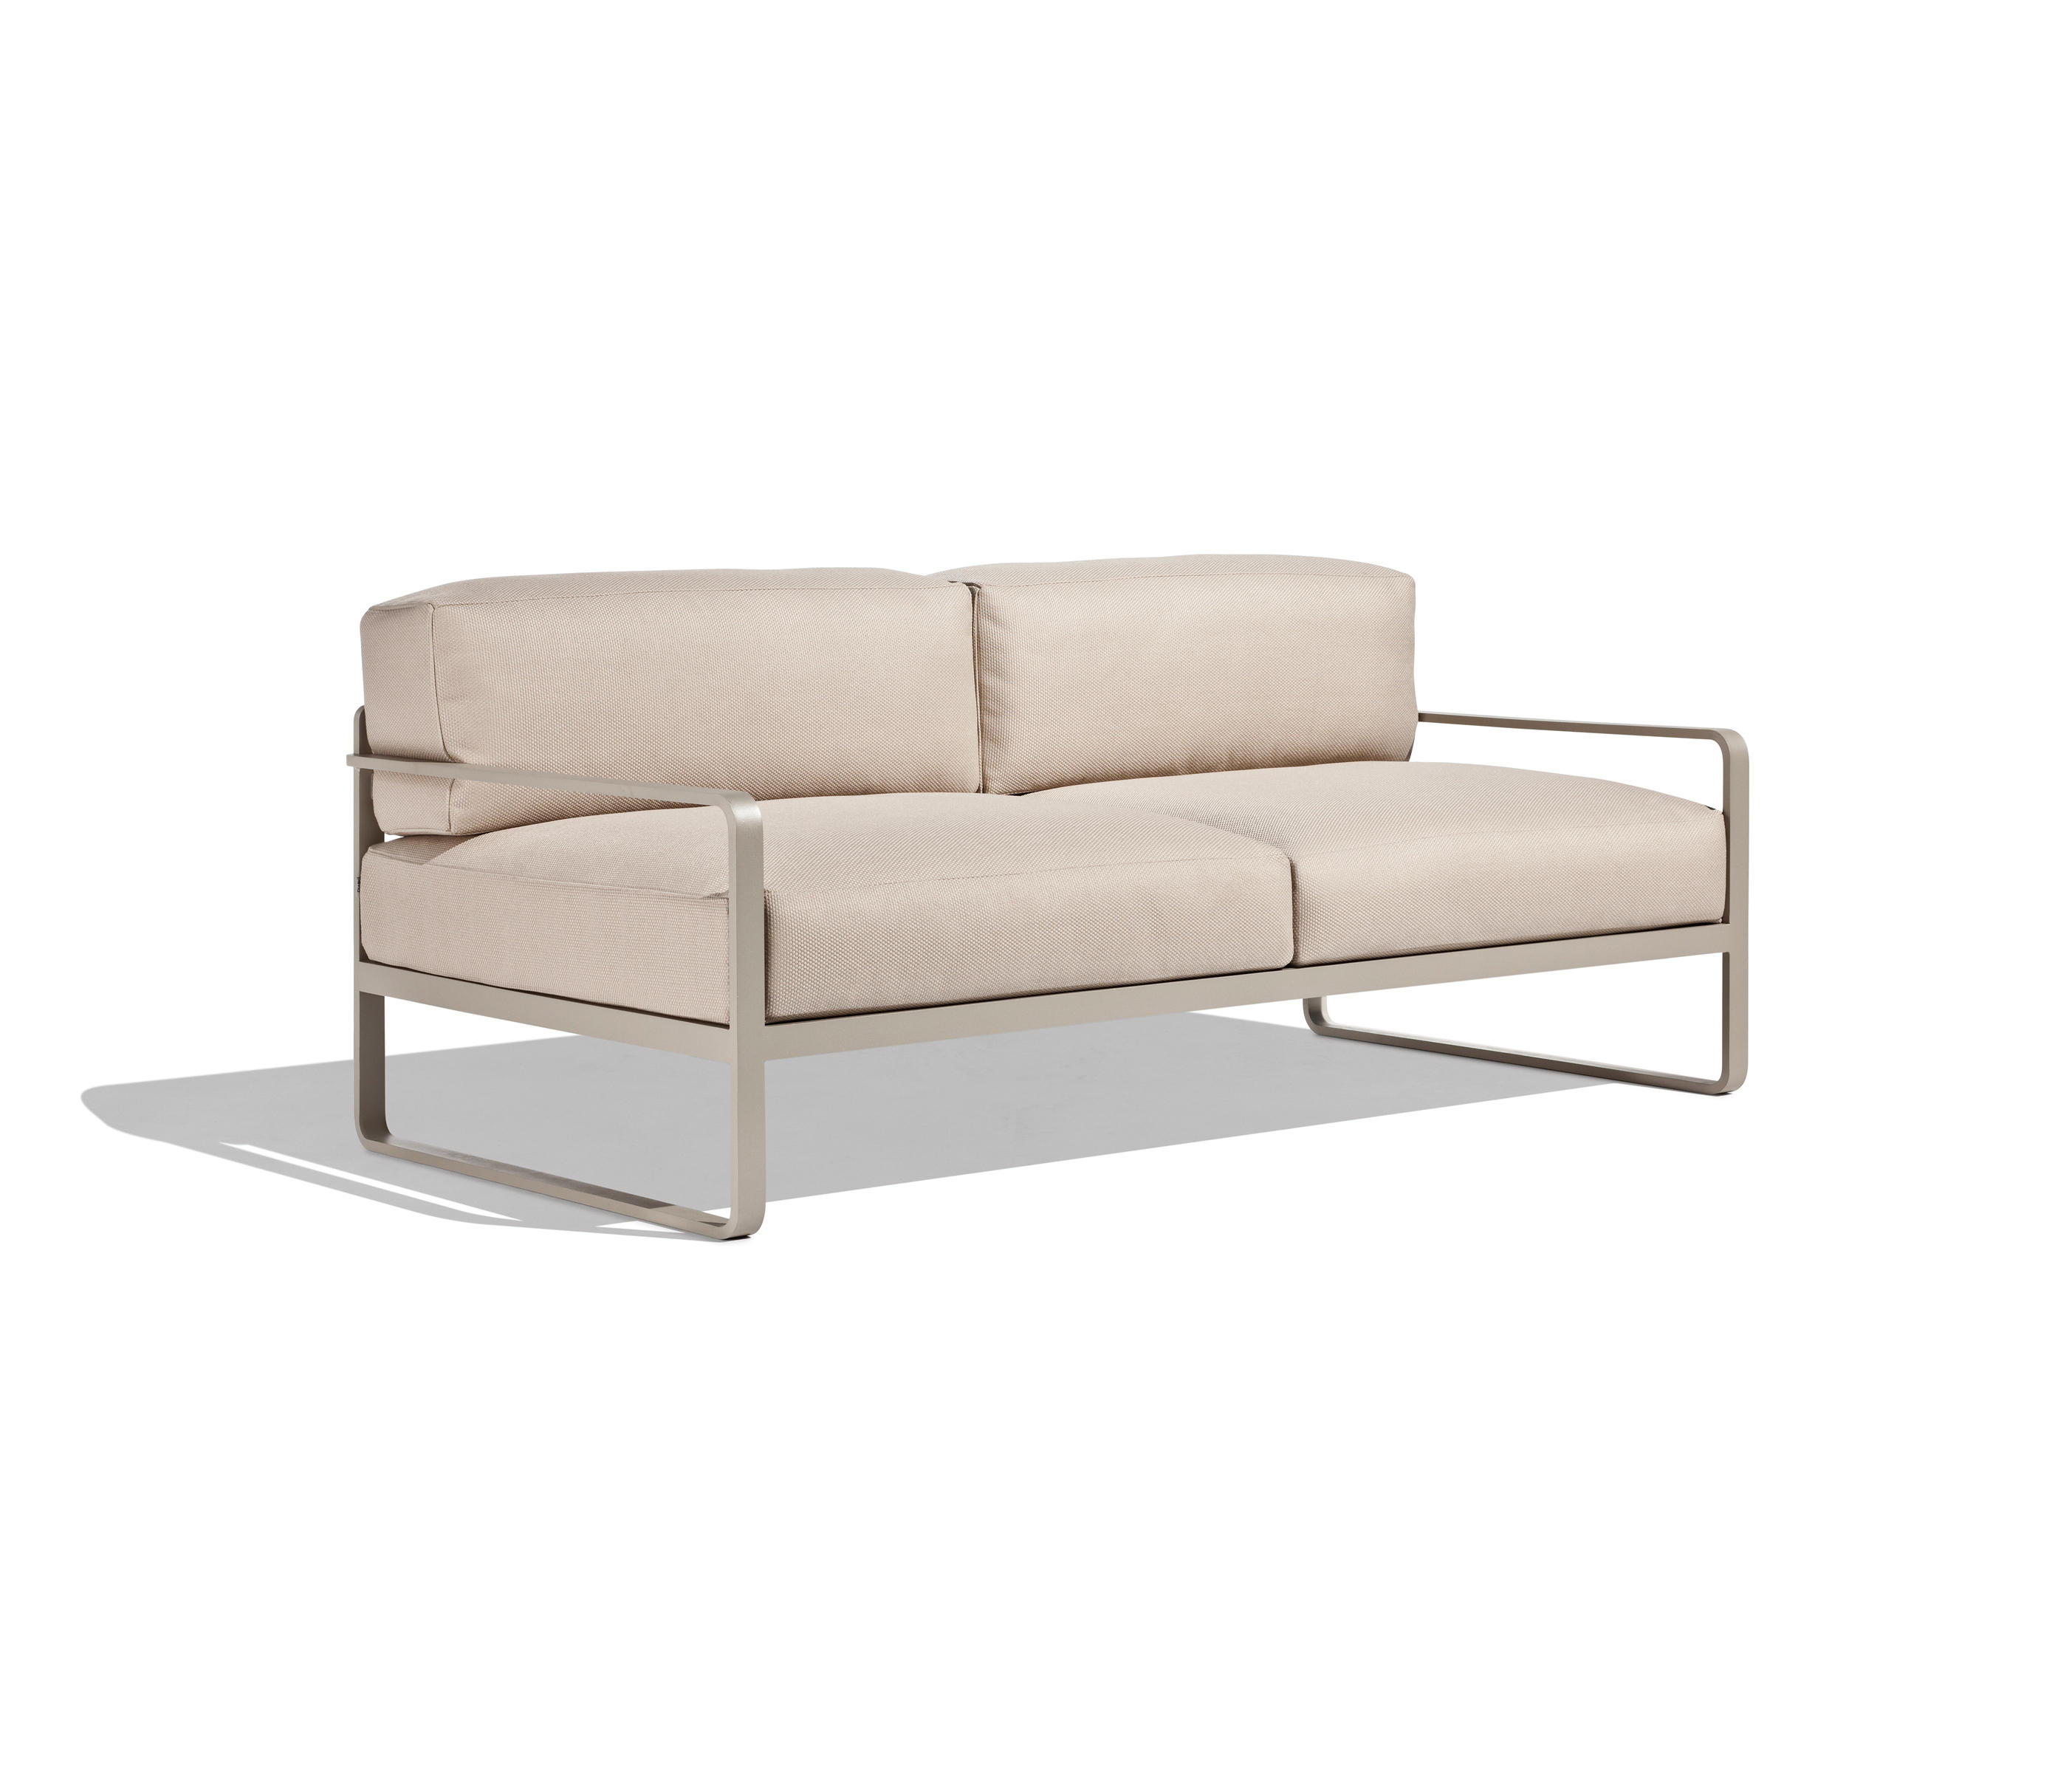 Sit 2 seater sofa garden sofas from bivaq architonic for Sofa esquinero jardin